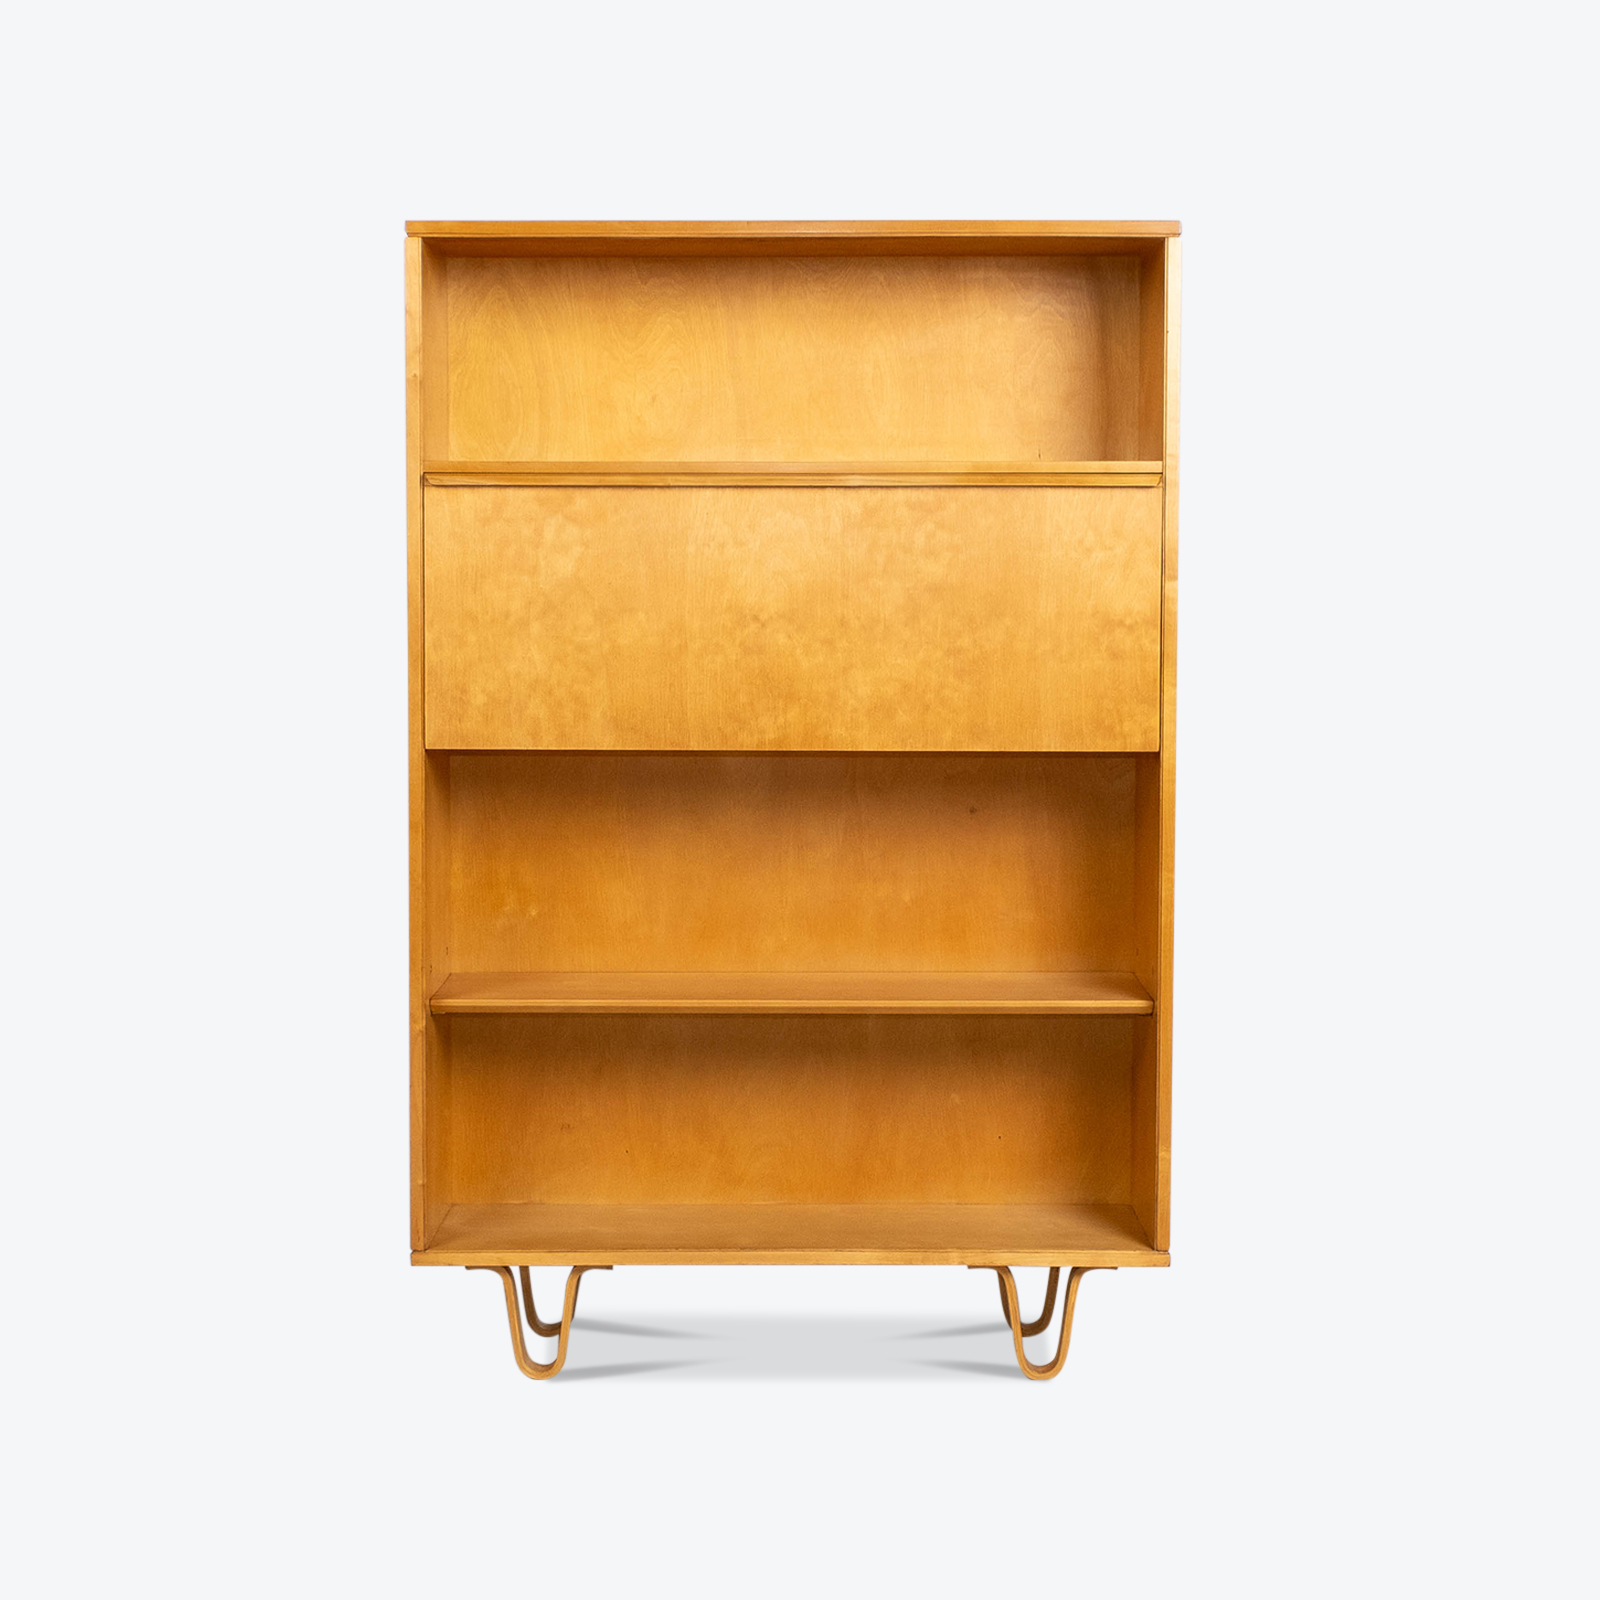 Bb04 Bookcase By Cees Braakman For Pastoe In Birch, 1950s, The Netherlands Hero